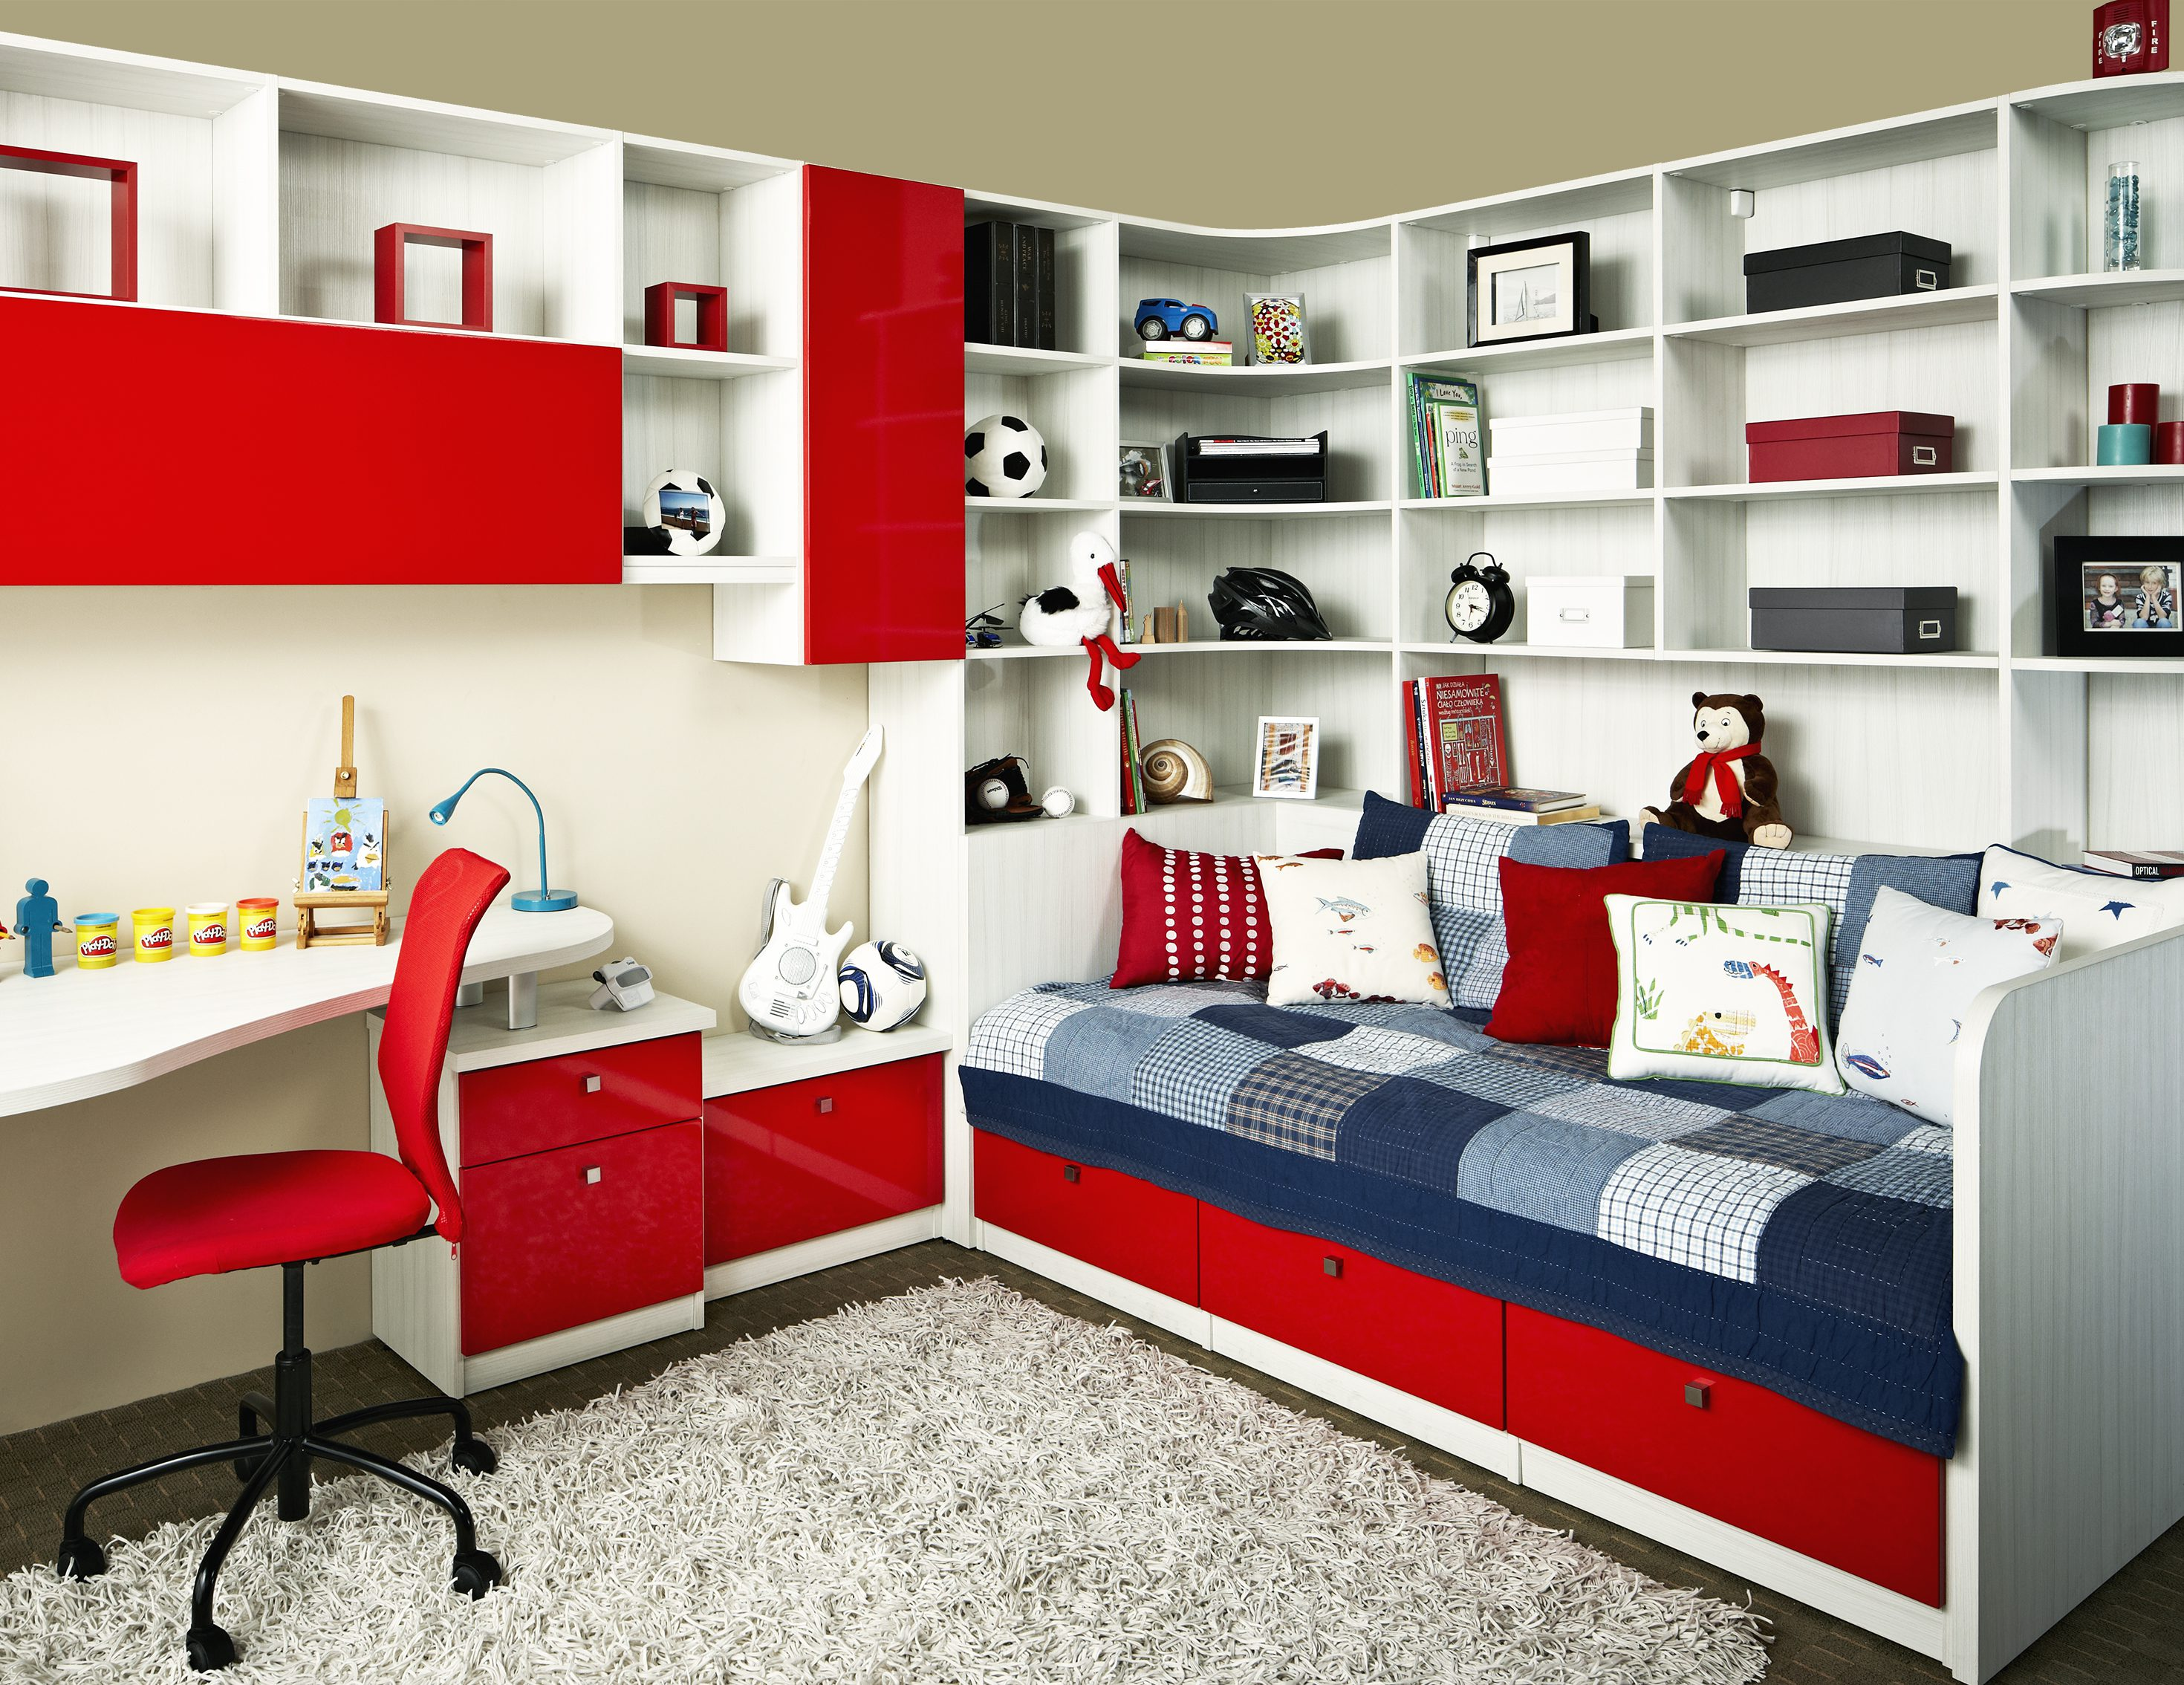 White Themed Kids Room With Built In Bed Desk Shelves And High Gloss Red  Fronted Cabinets